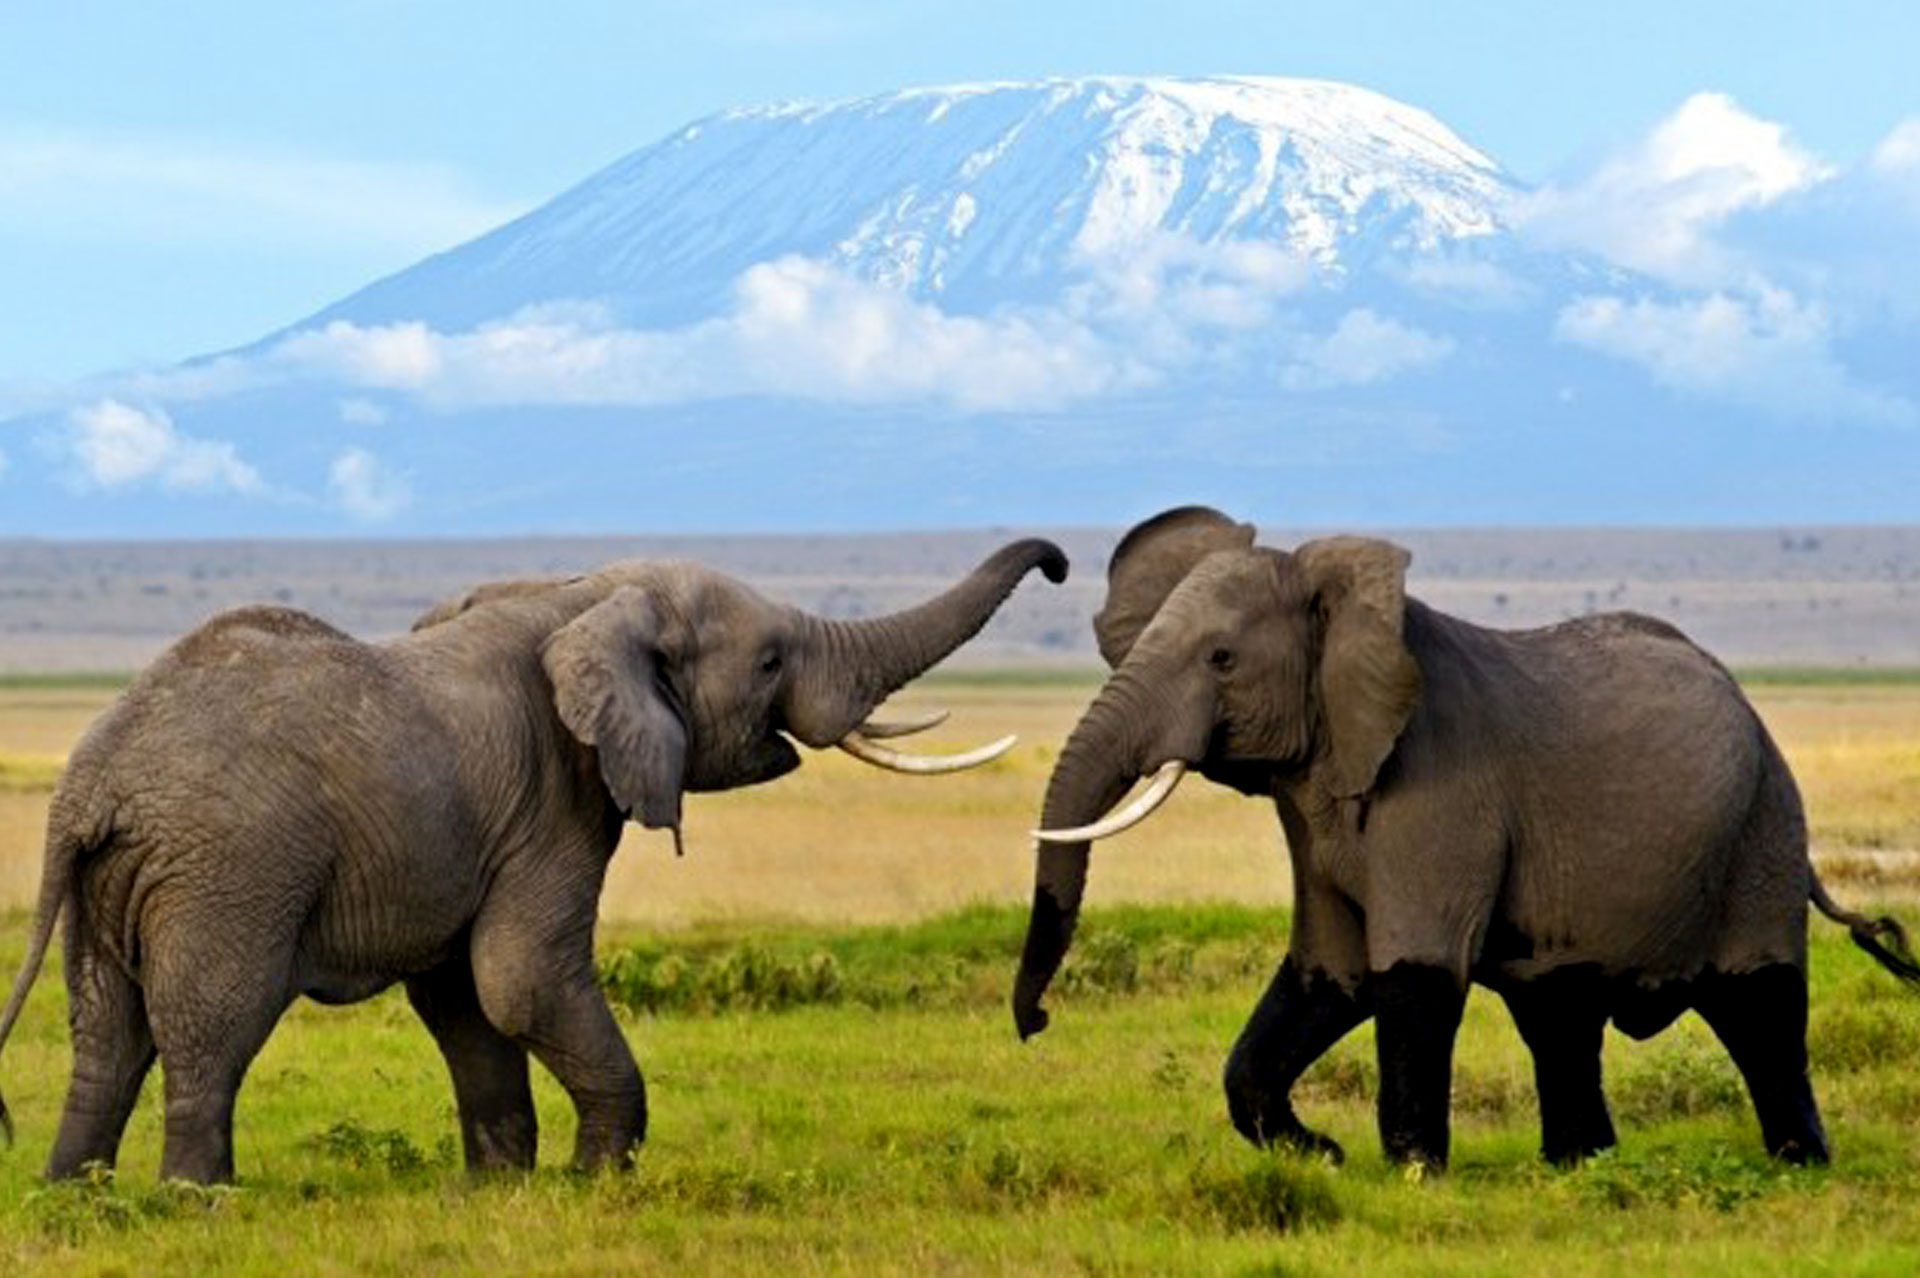 Diani_travel_center_National_Parks_in_Kenya_Amboseli_National_park_image_1